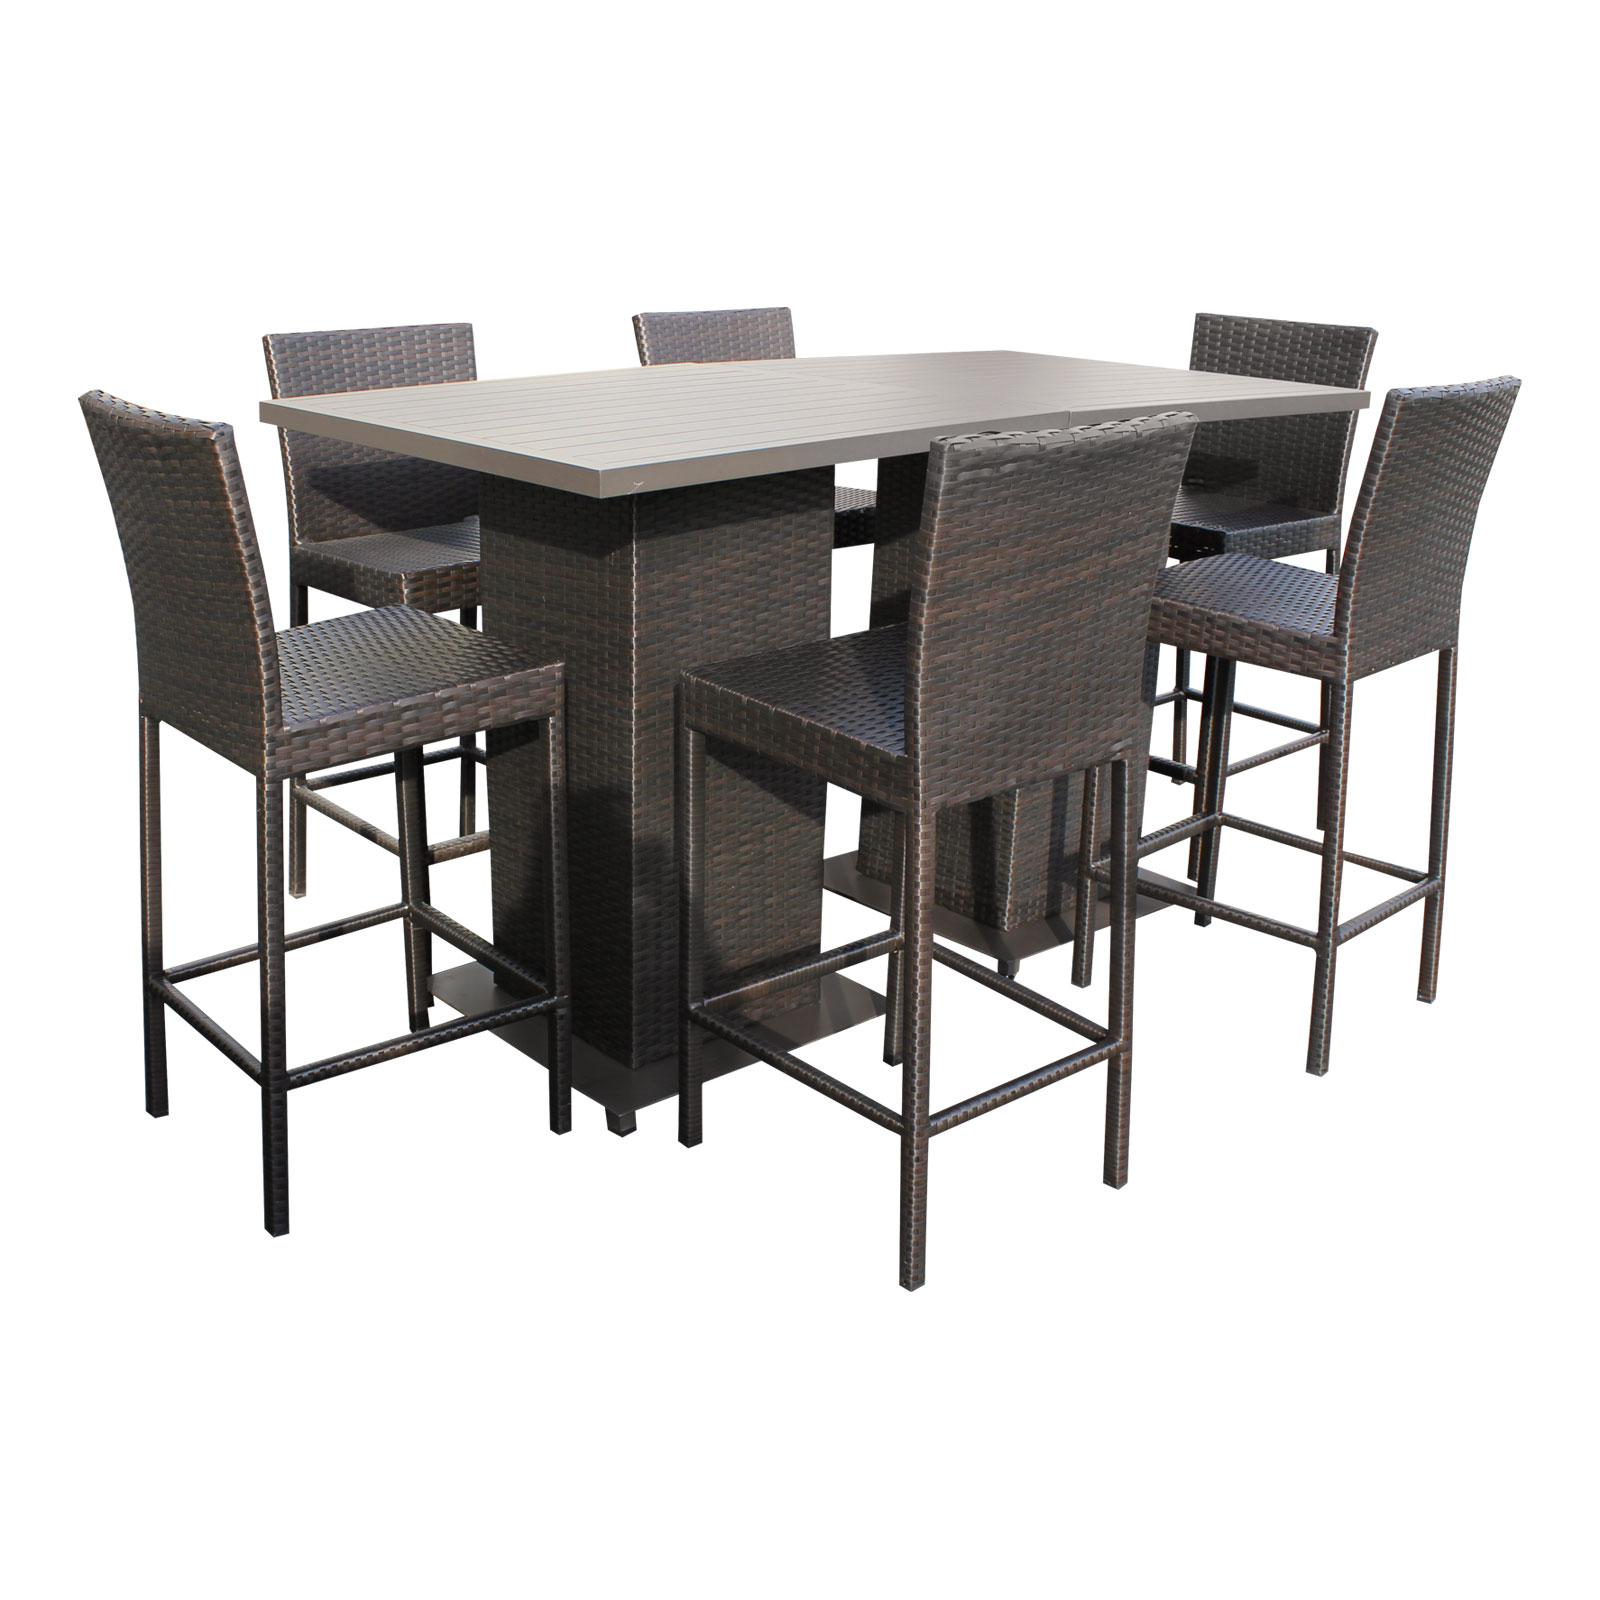 Marvelous Venus Pub Table Set With Backless Barstools 5 Piece Outdoor Wicker Patio  Furniture   Walmart.com